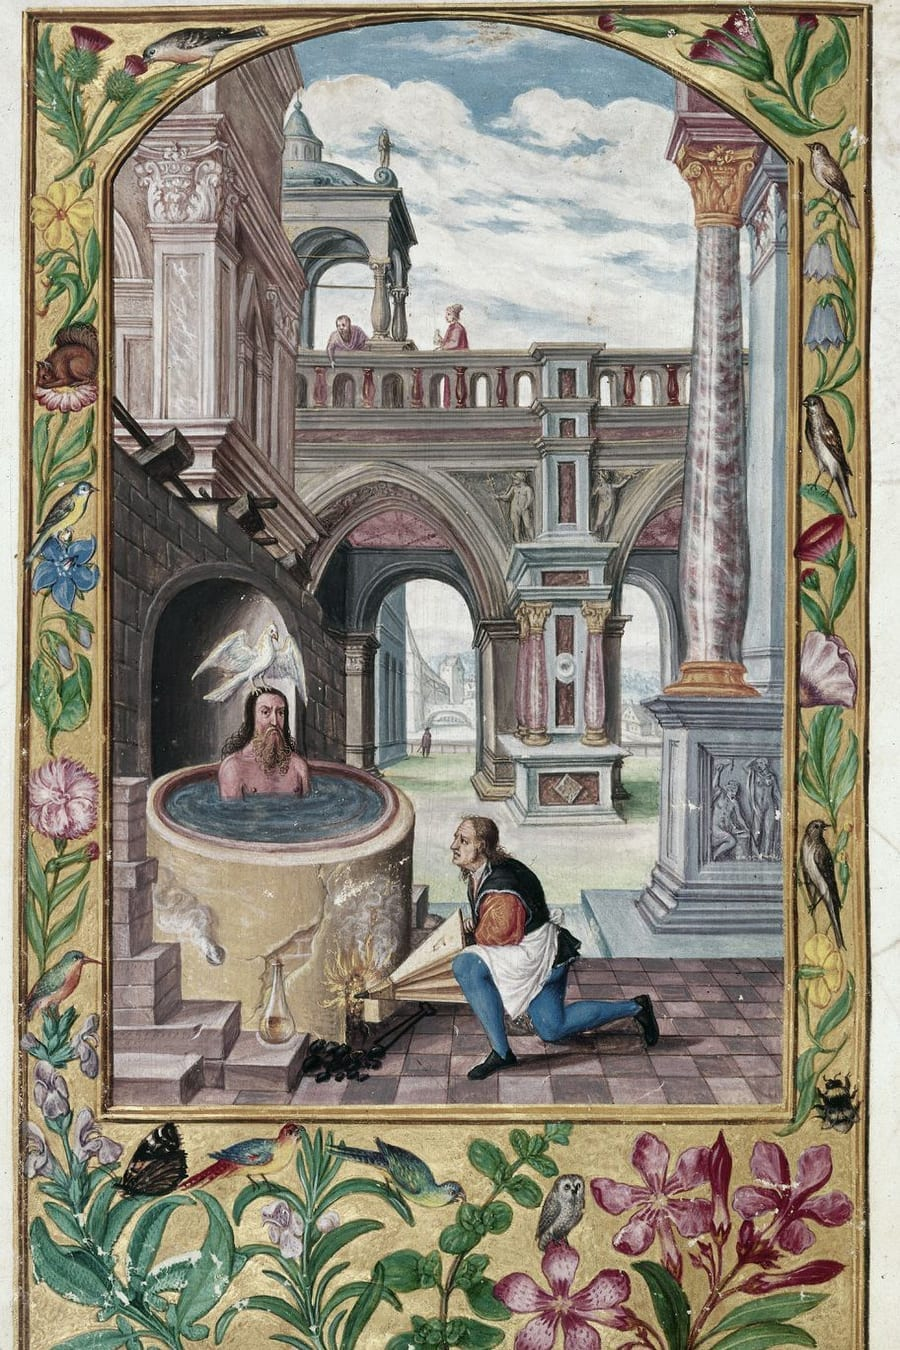 Illustration of a man bathing from the Alchemical manuscript Splendor Solis